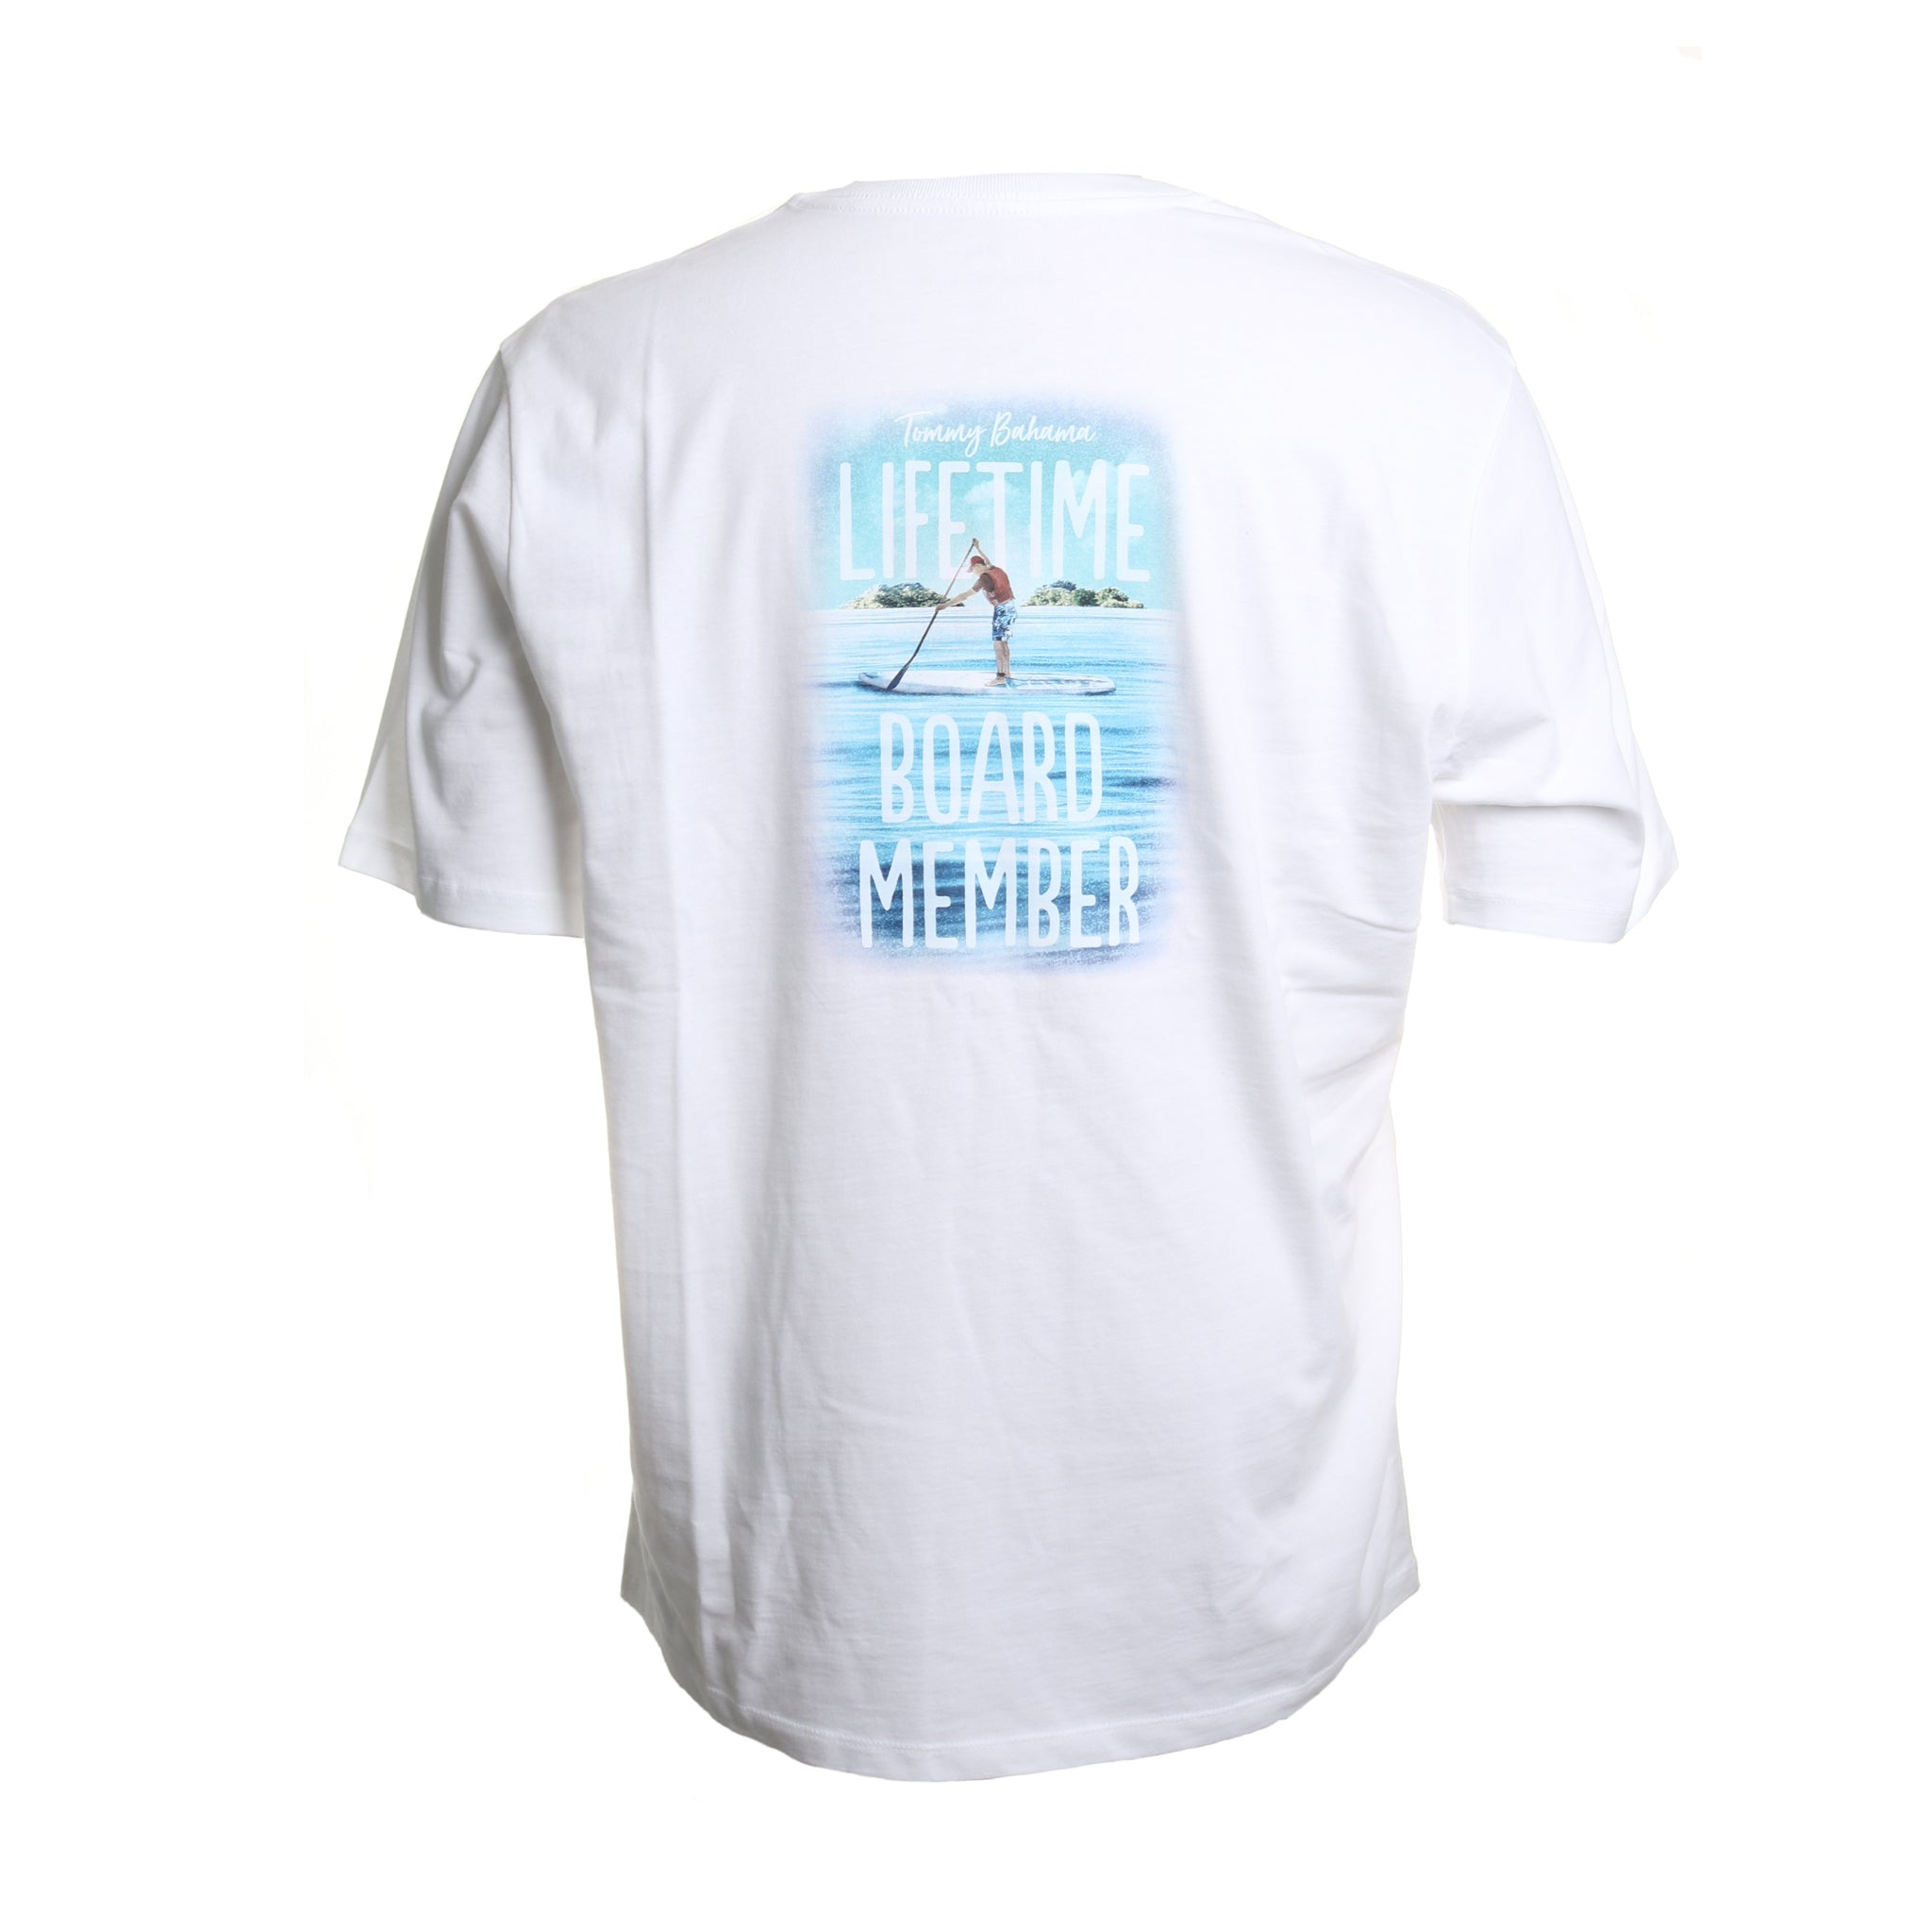 Lifetime Board Member Cotton T-Shirt